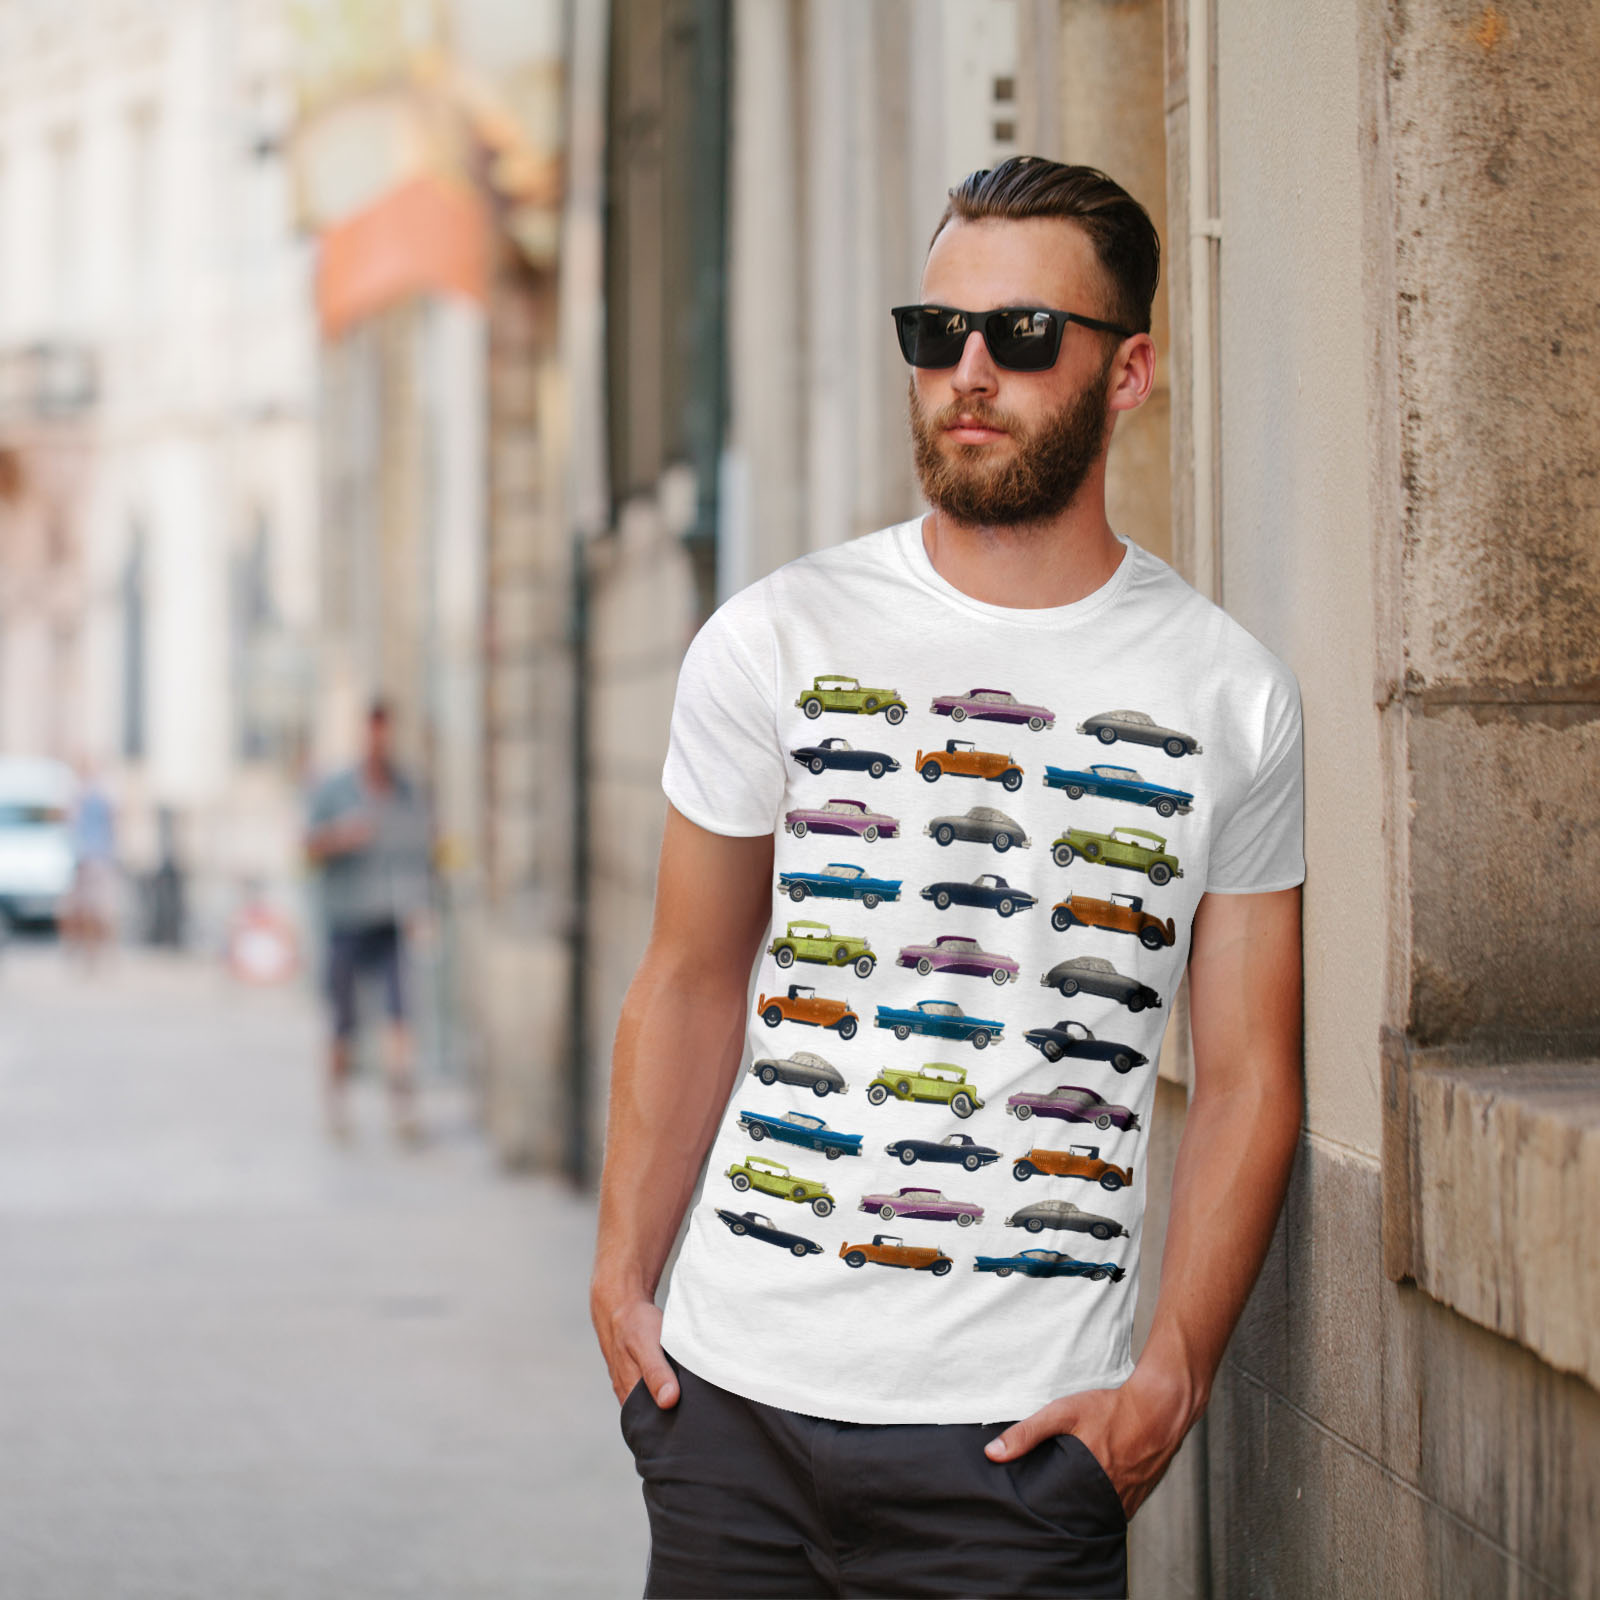 Wellcoda-Classic-Old-Pattern-Car-Mens-T-shirt-Retro-Graphic-Design-Printed-Tee thumbnail 11